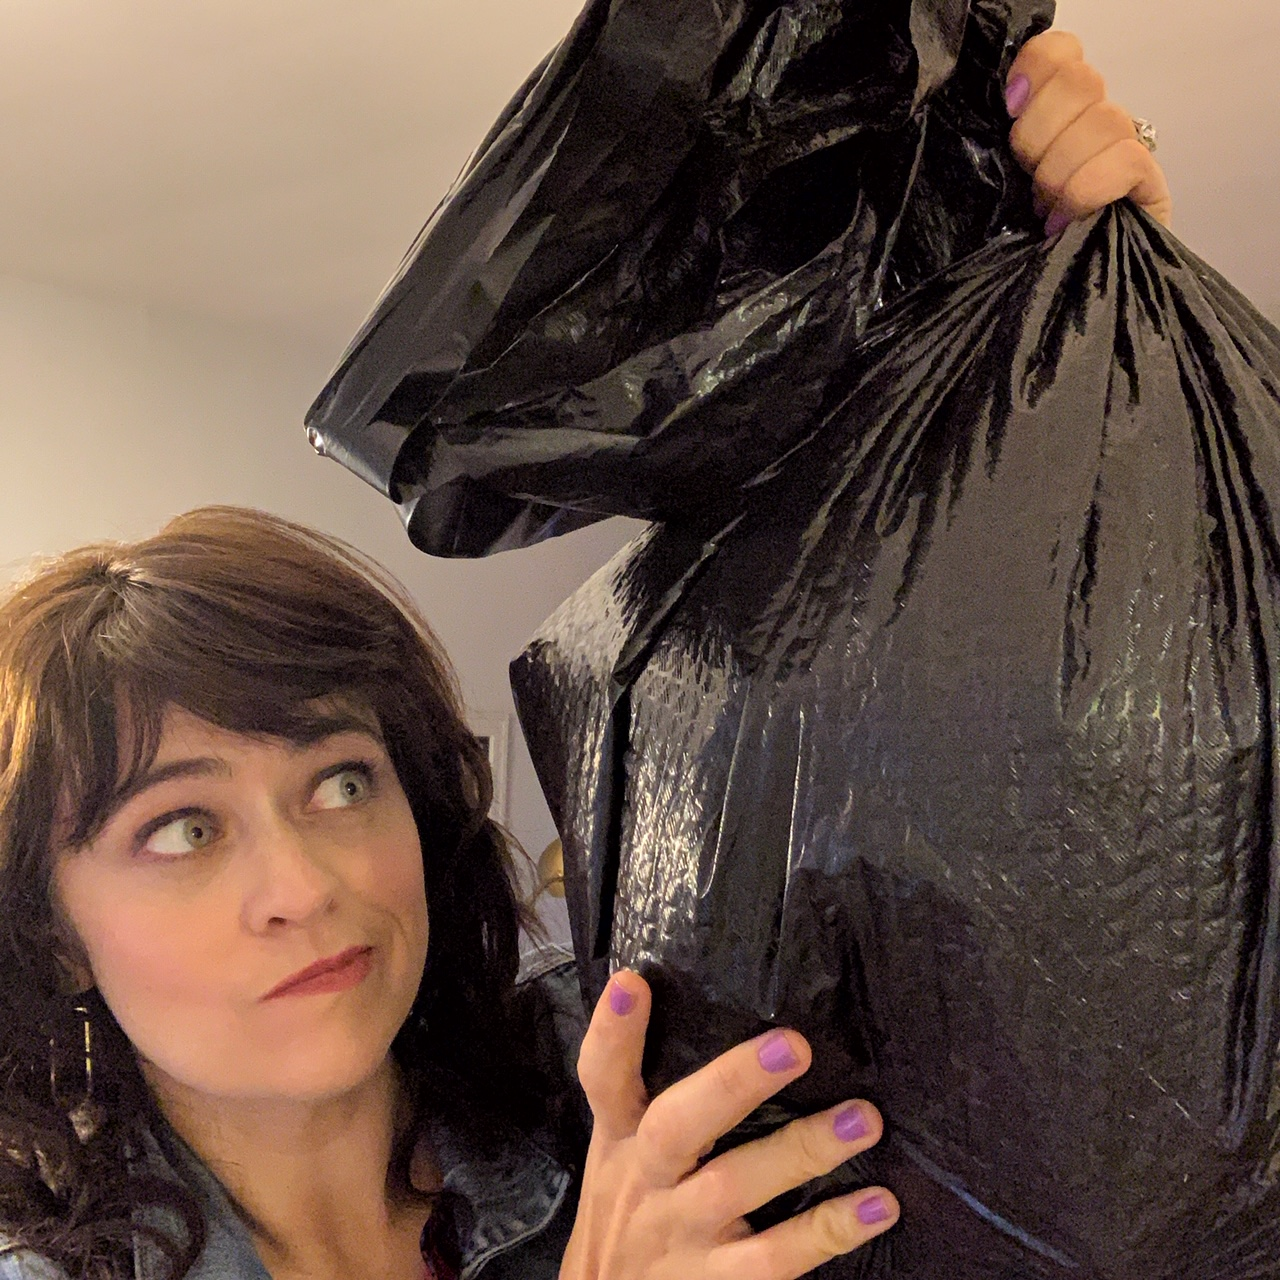 girl holding trash bag